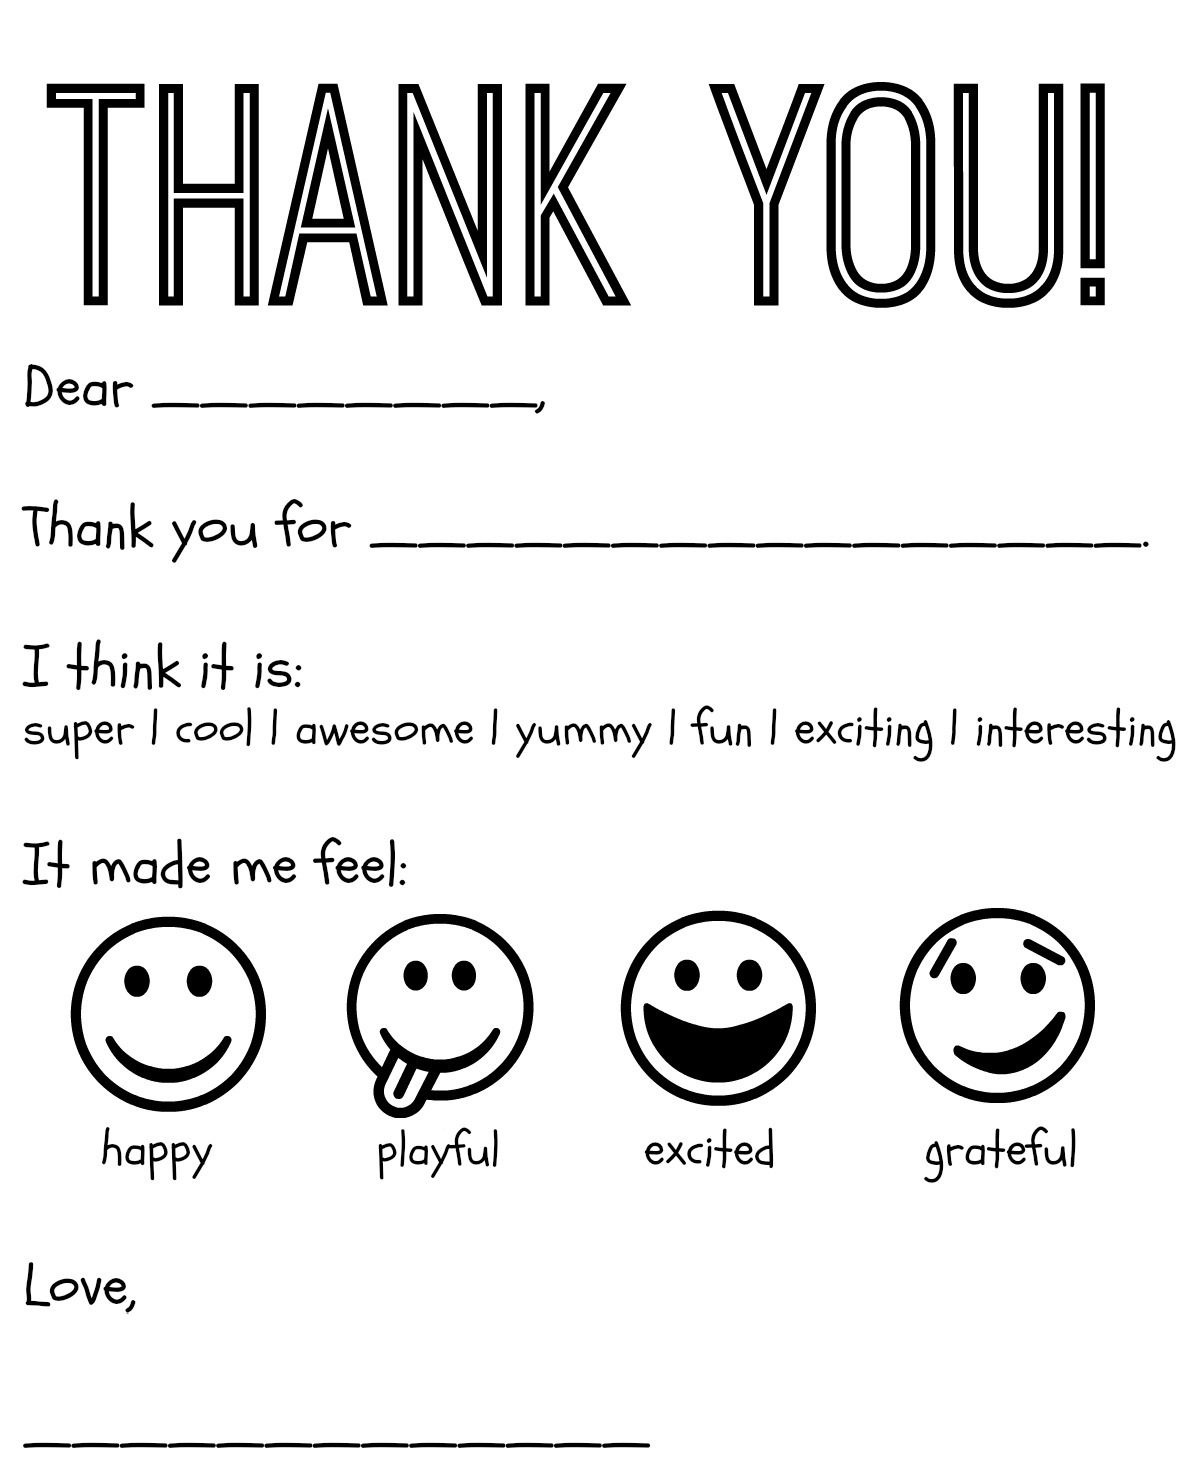 Free Printable Kids Thank You Cards To Color   Thank You Card - Free Printable Thank You Cards Black And White